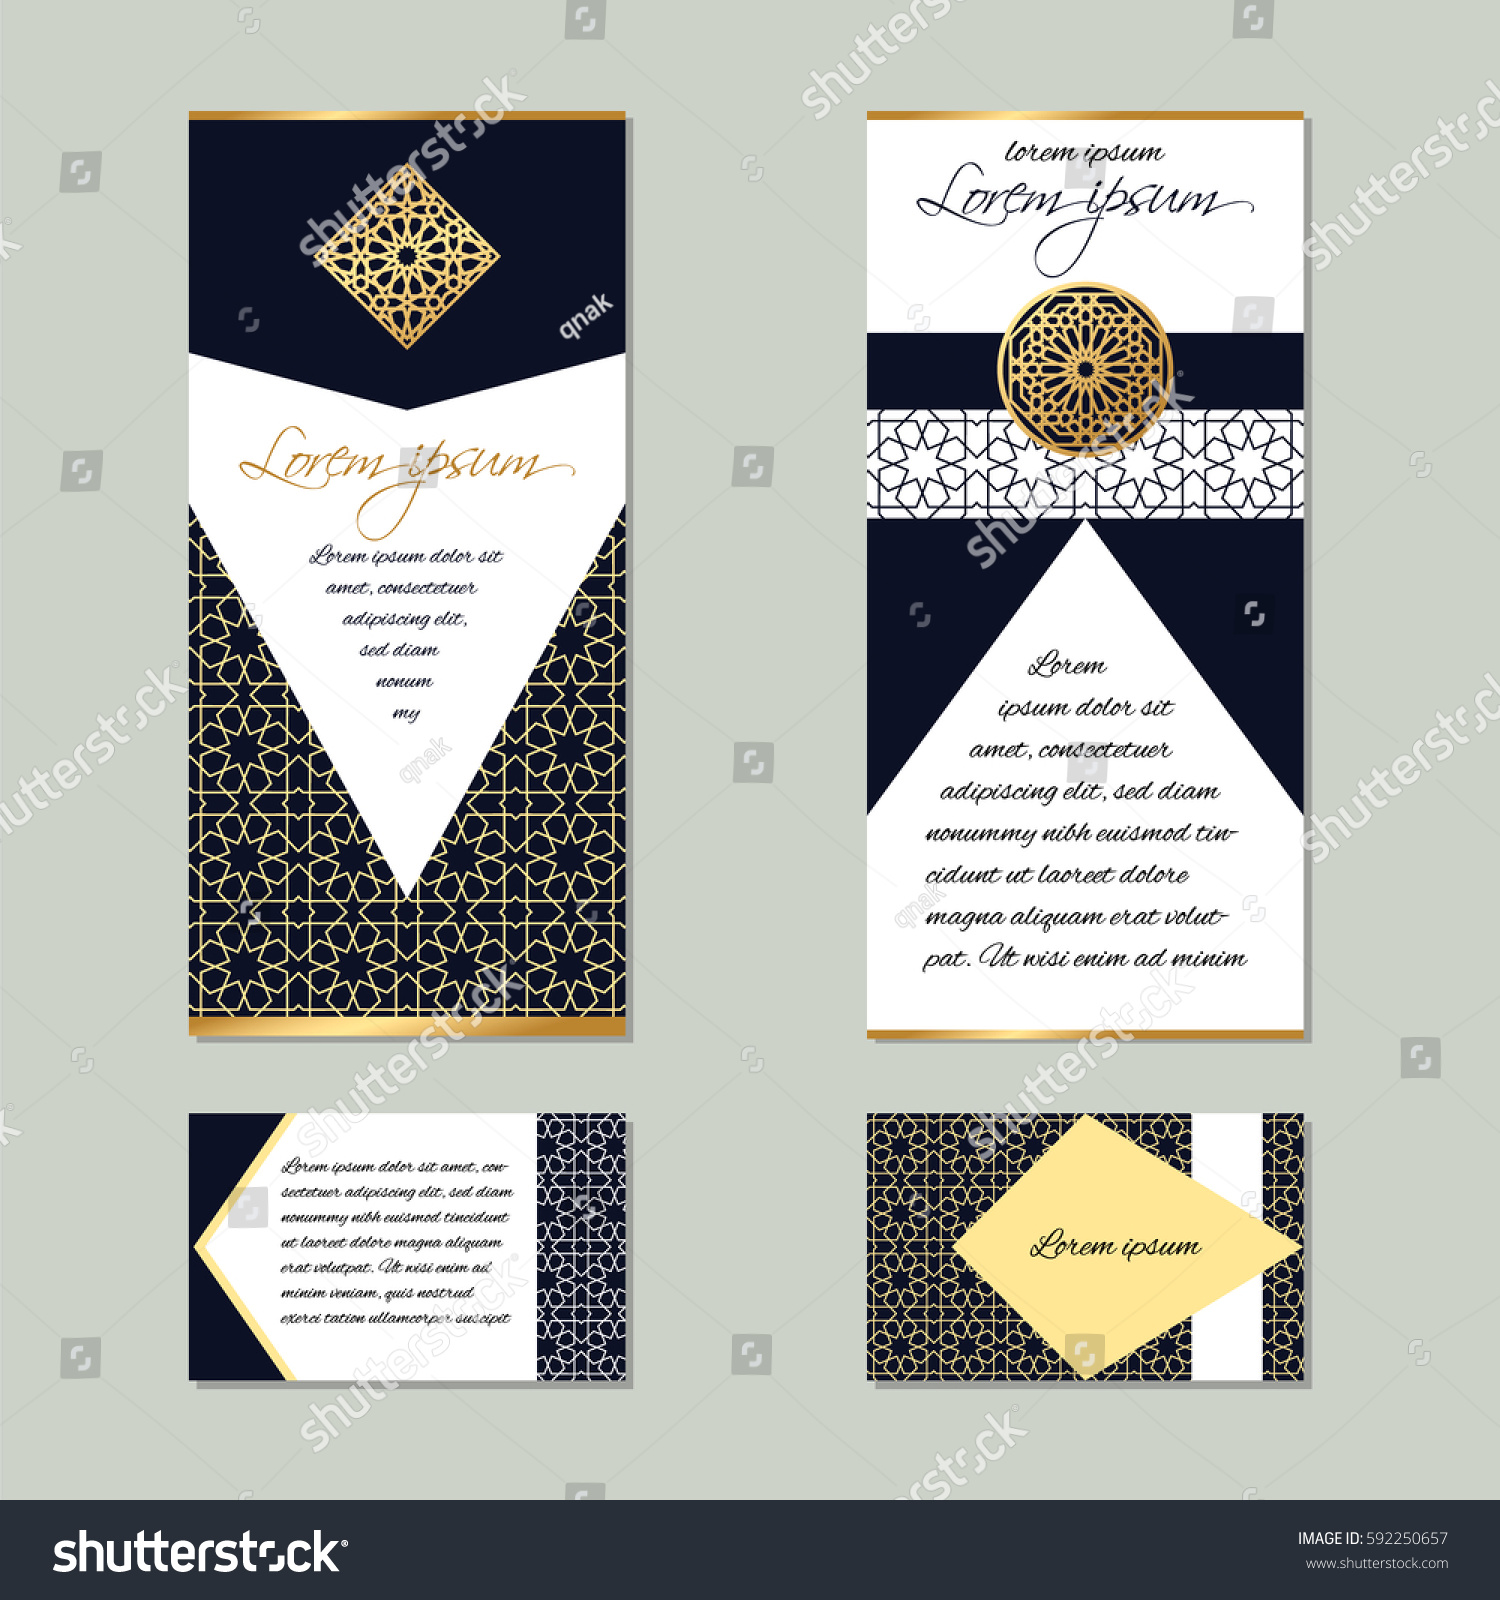 Brochure design business cards flyers islamic imagem vetorial de brochure design business cards flyers islamic imagem vetorial de banco 592250657 shutterstock reheart Choice Image